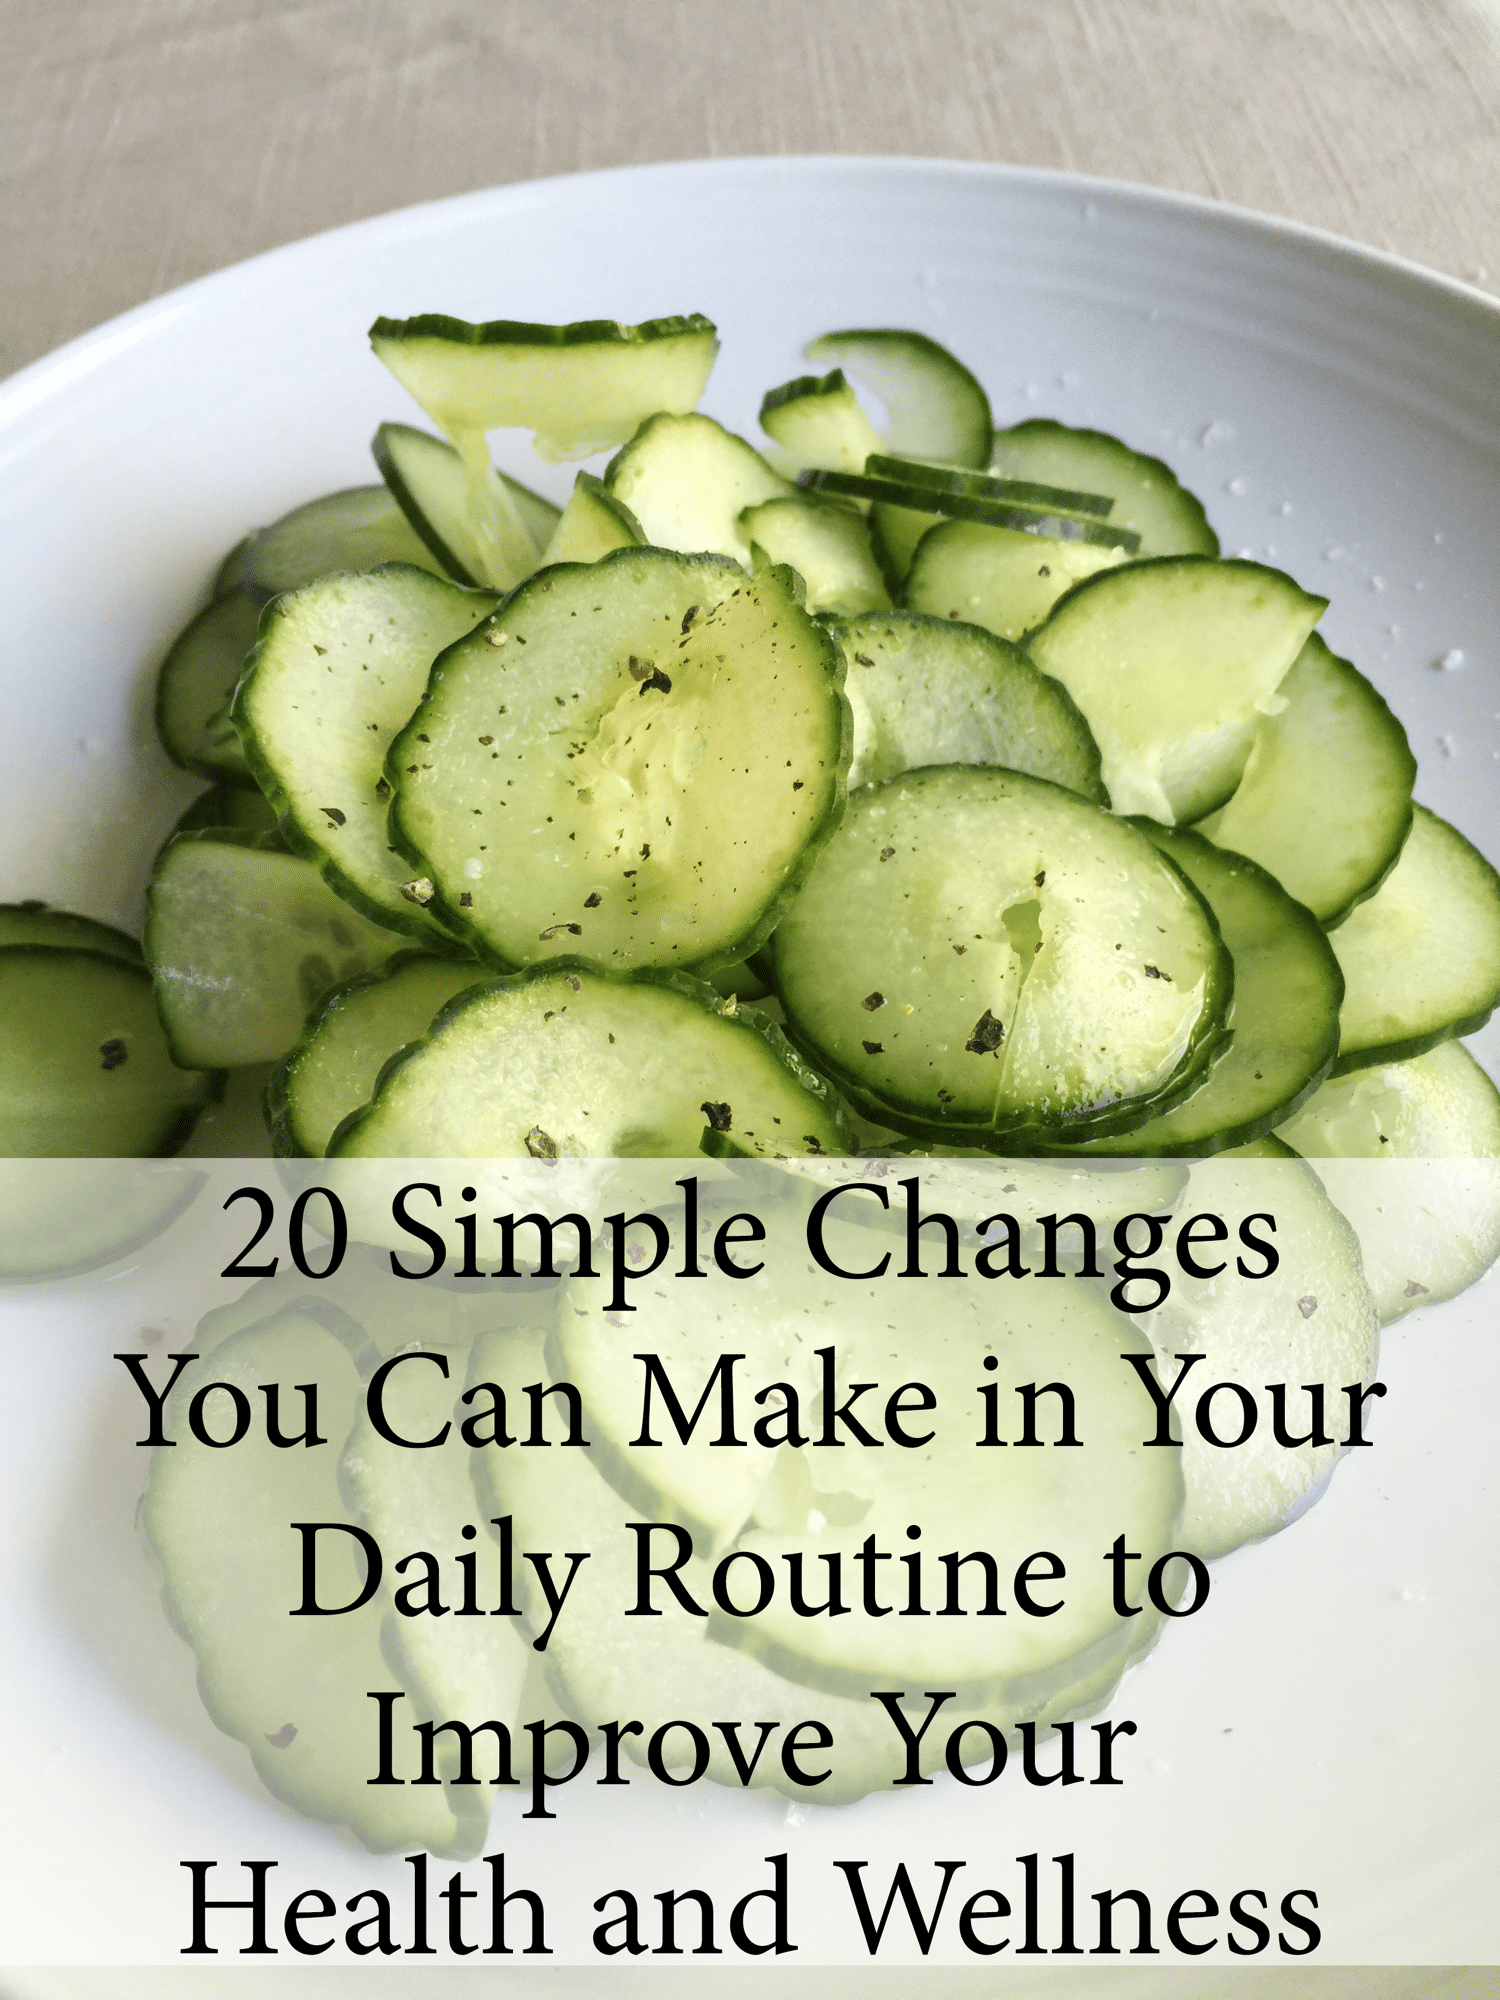 20 Simple Changes You Can Make in Your Daily Routine to Improve Your Health and Wellness